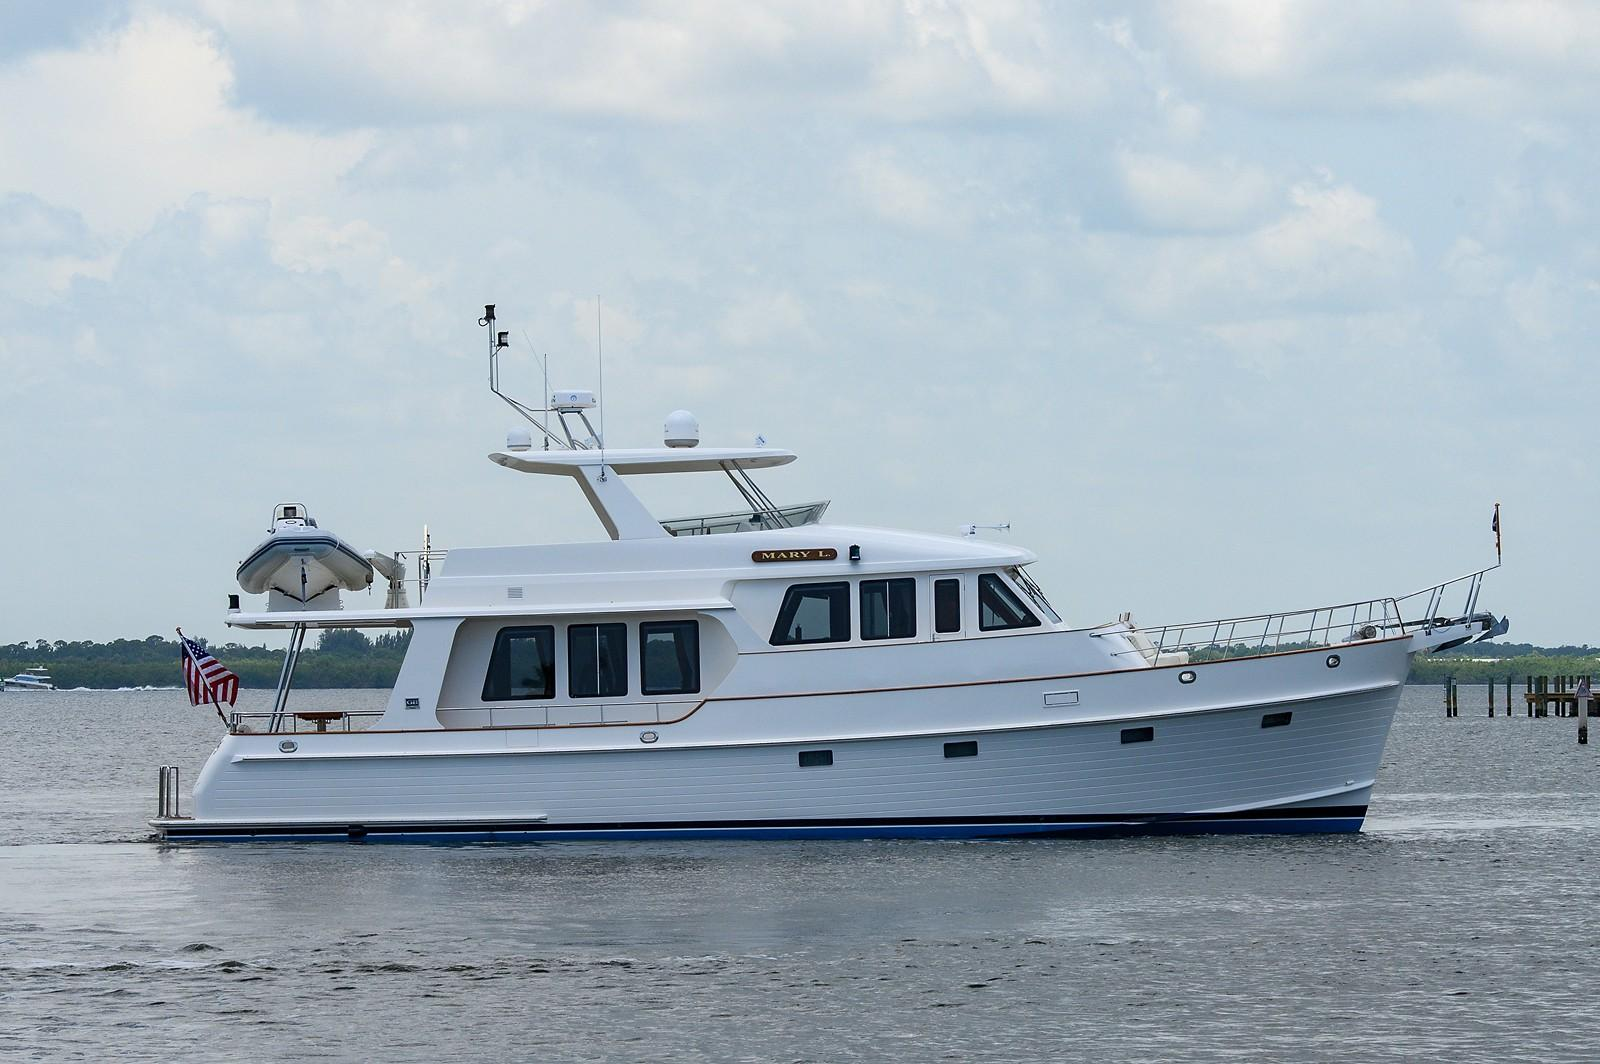 Pre-Owned Grand Banks Yachts - Explore Our Yacht Listings